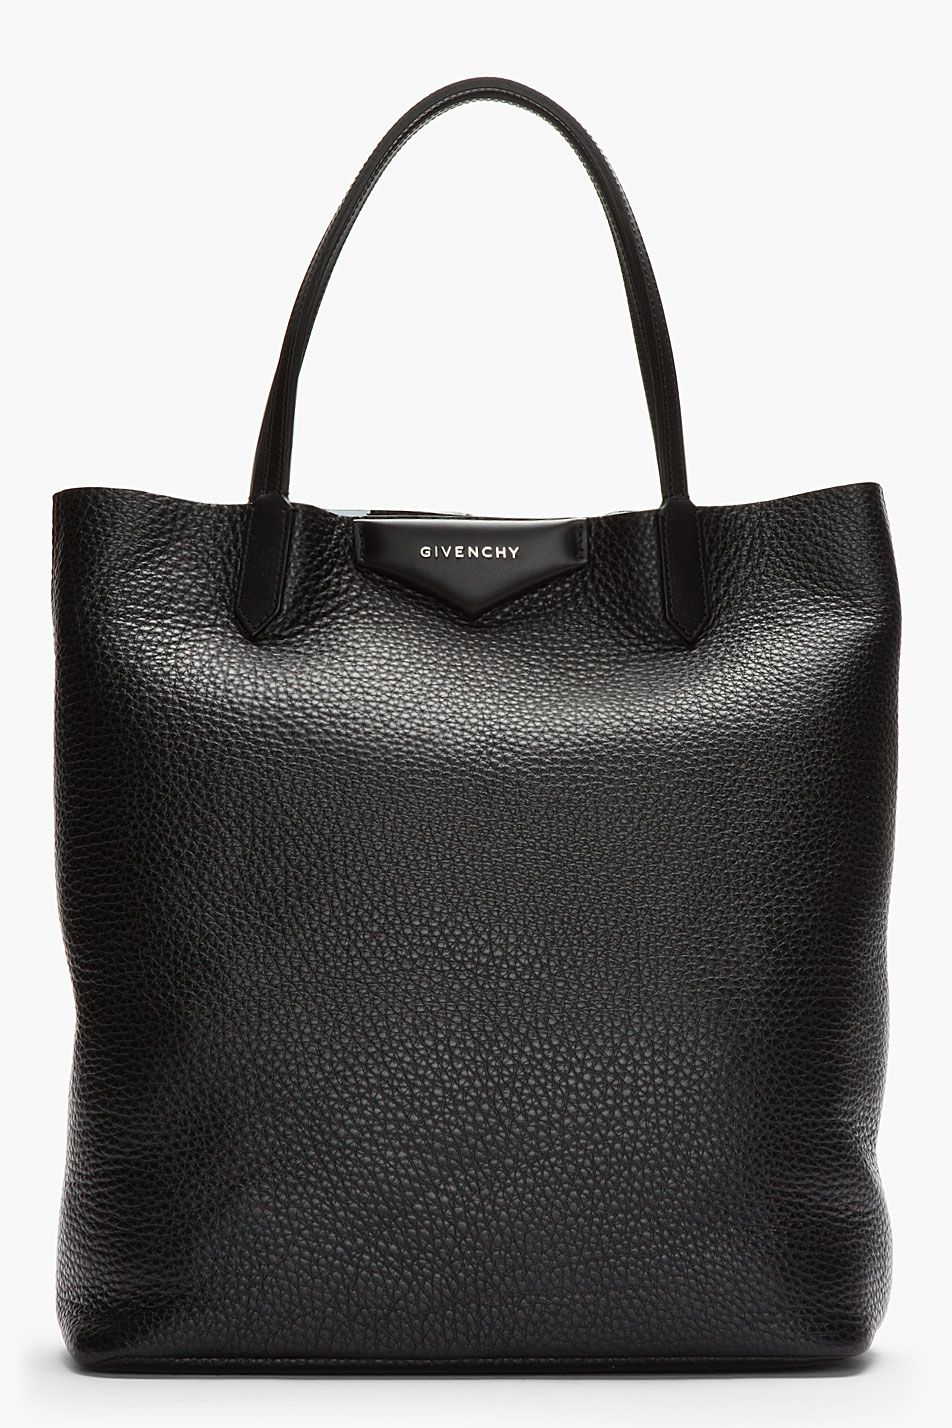 Have to get this tote next month. Its good for baby stuff tho ...